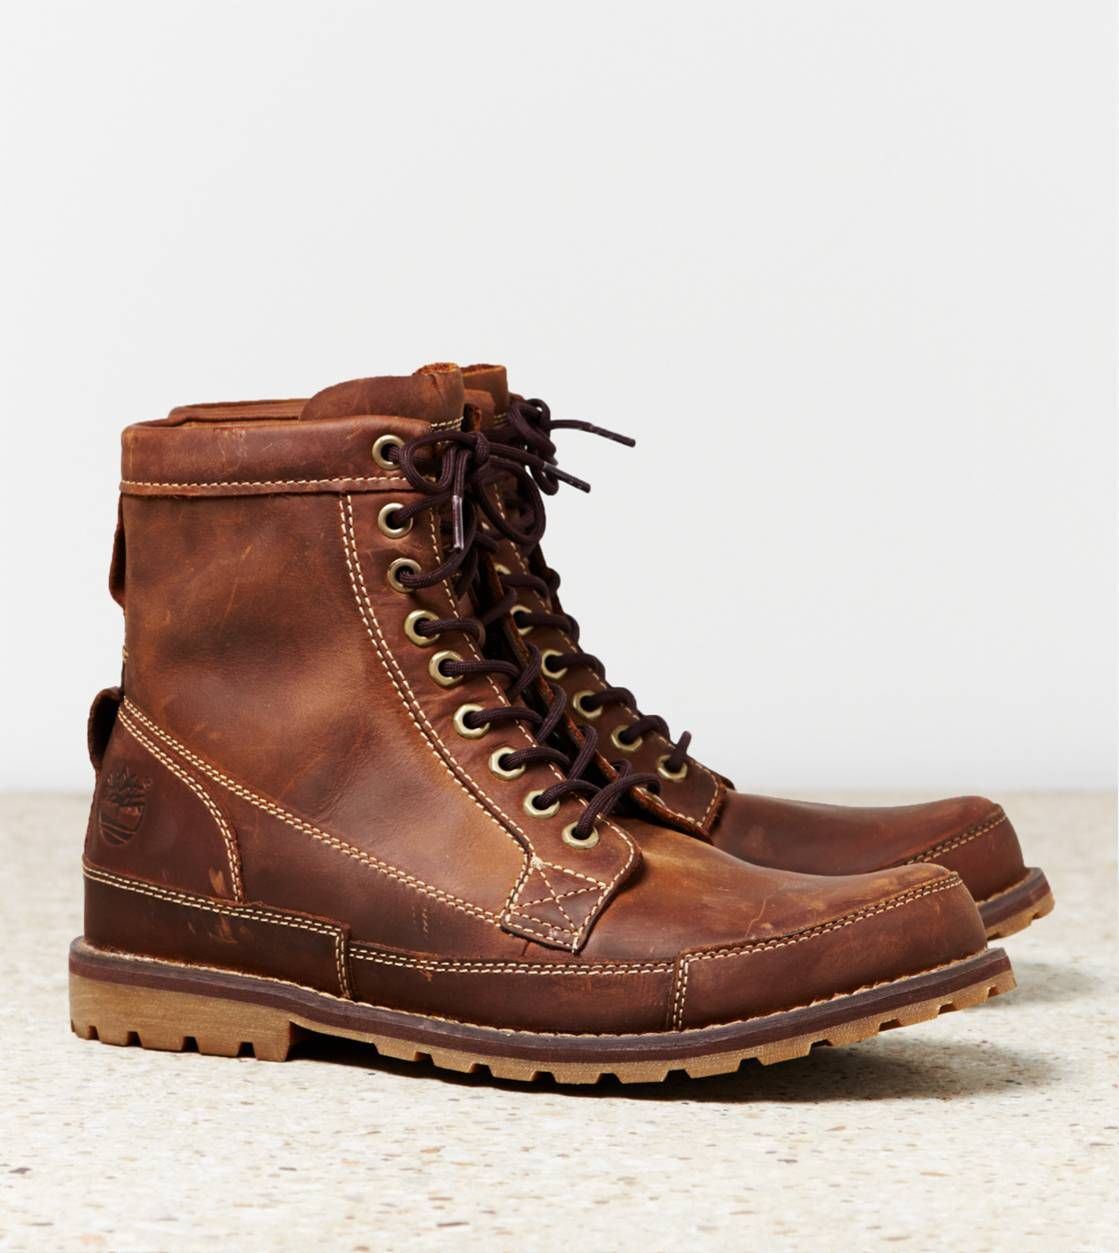 Timberland Earthkeepers Original Leather 6 $140 | My clothes